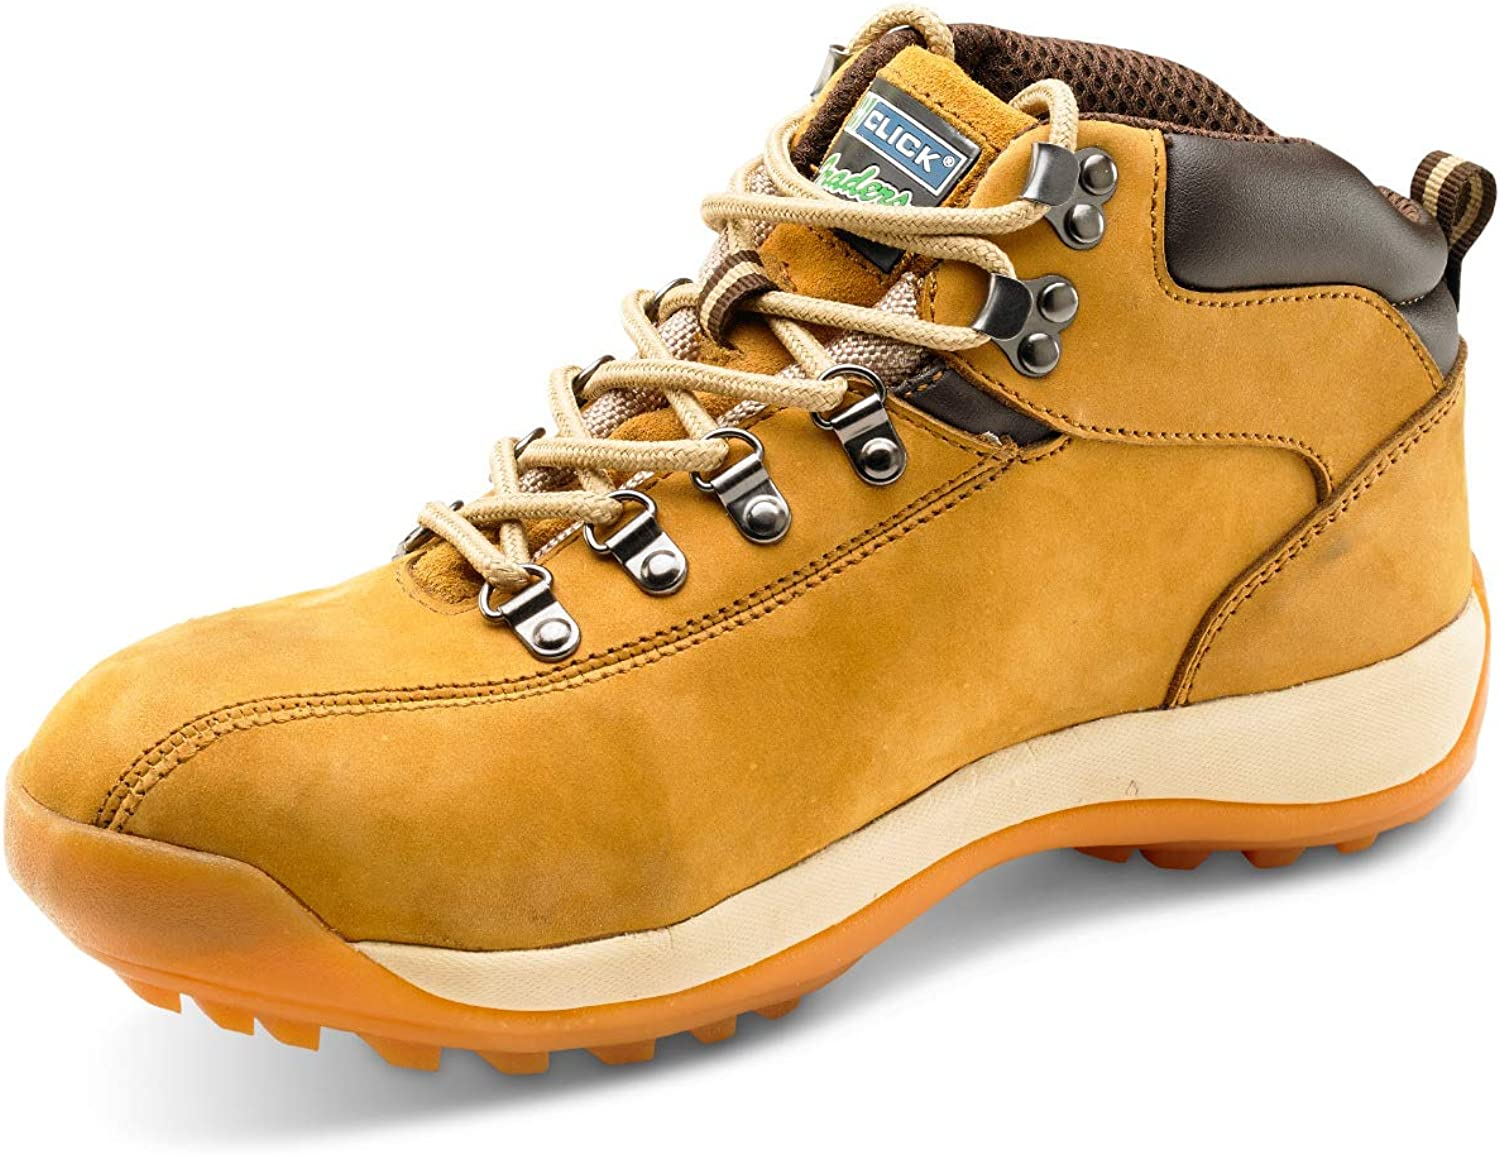 Safety Footwear Noose Buck Chukka Boot shoes Sizes 6-12